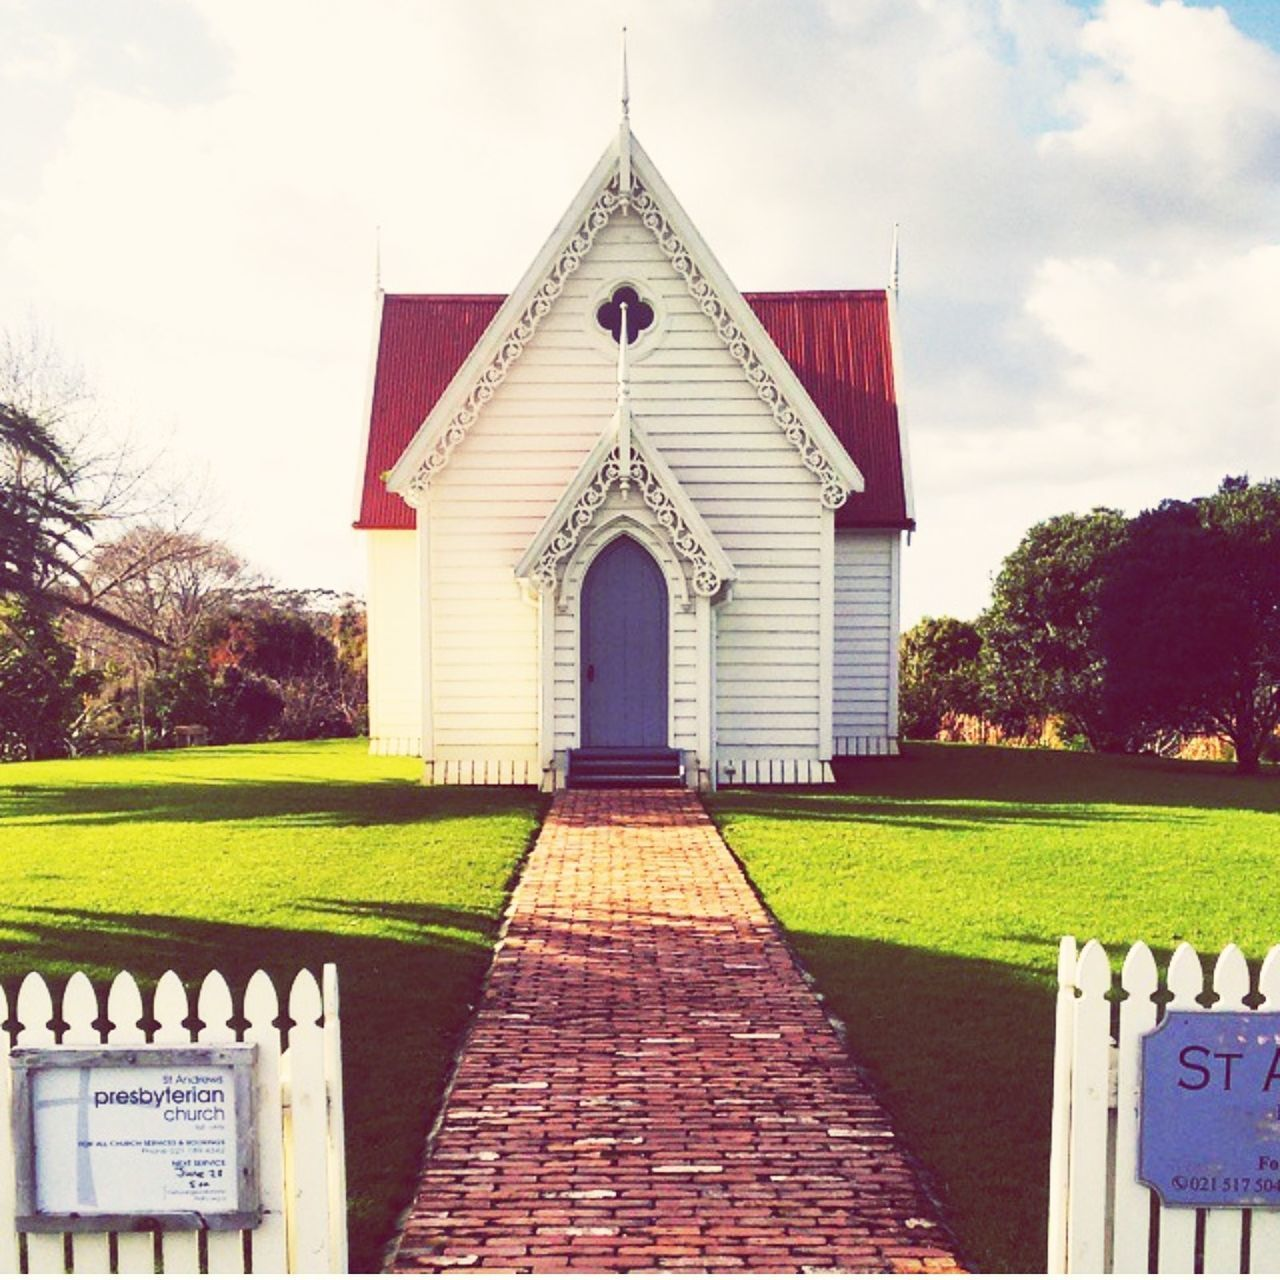 New Zealand charm Newzealand Charm Matakana  Church Picturesque Country Life